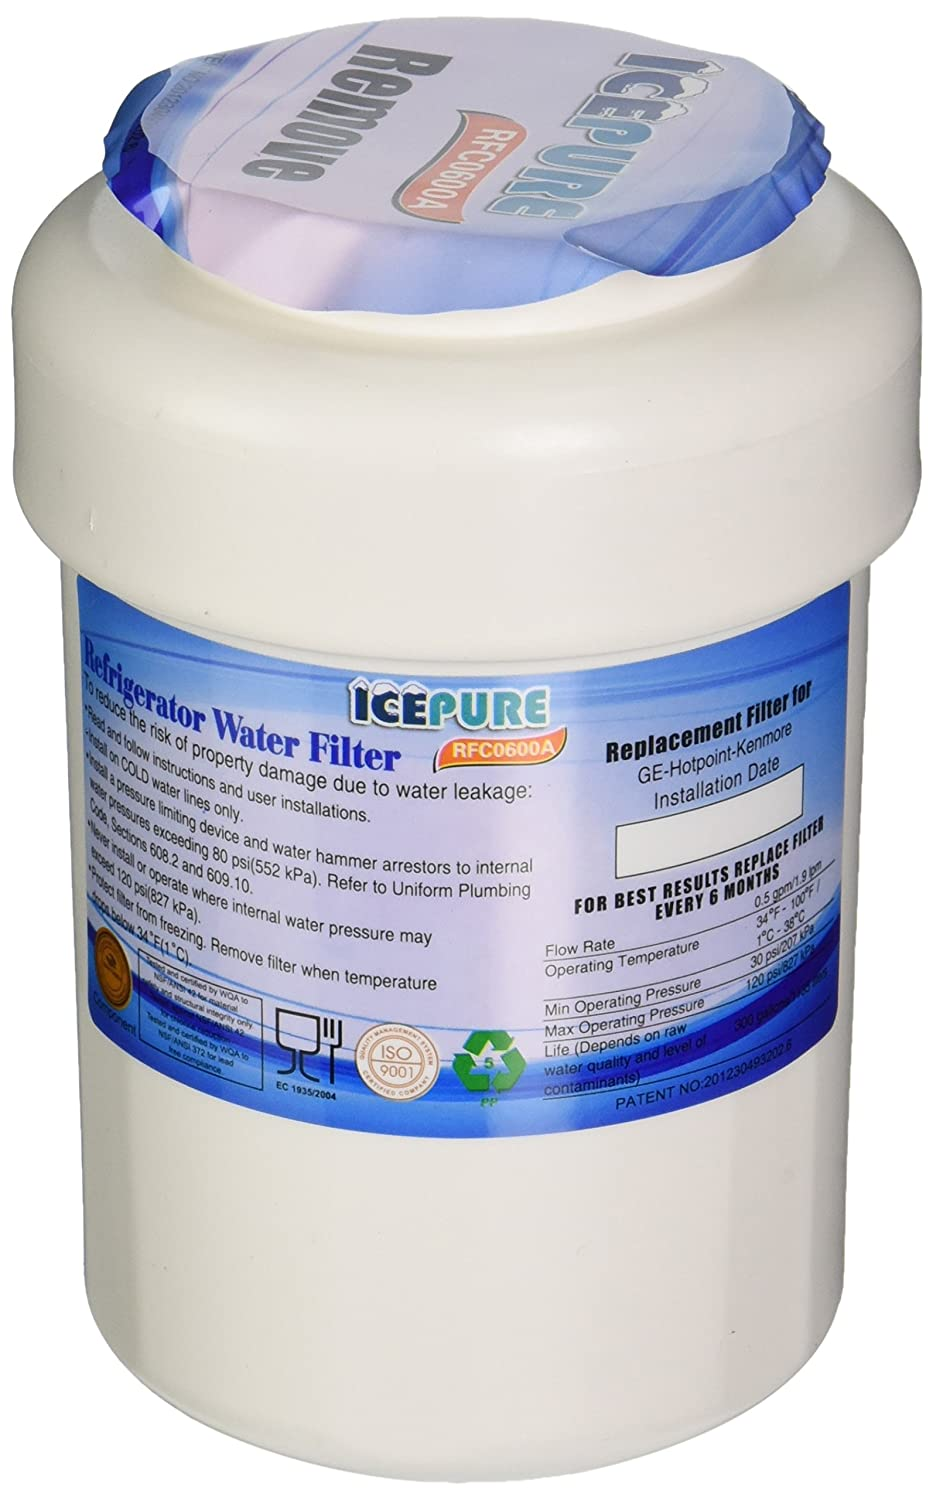 How To Replace Ge Water Filter Amazoncom Icepure Rwf0600a 3pk Water Filter To Replace Sears